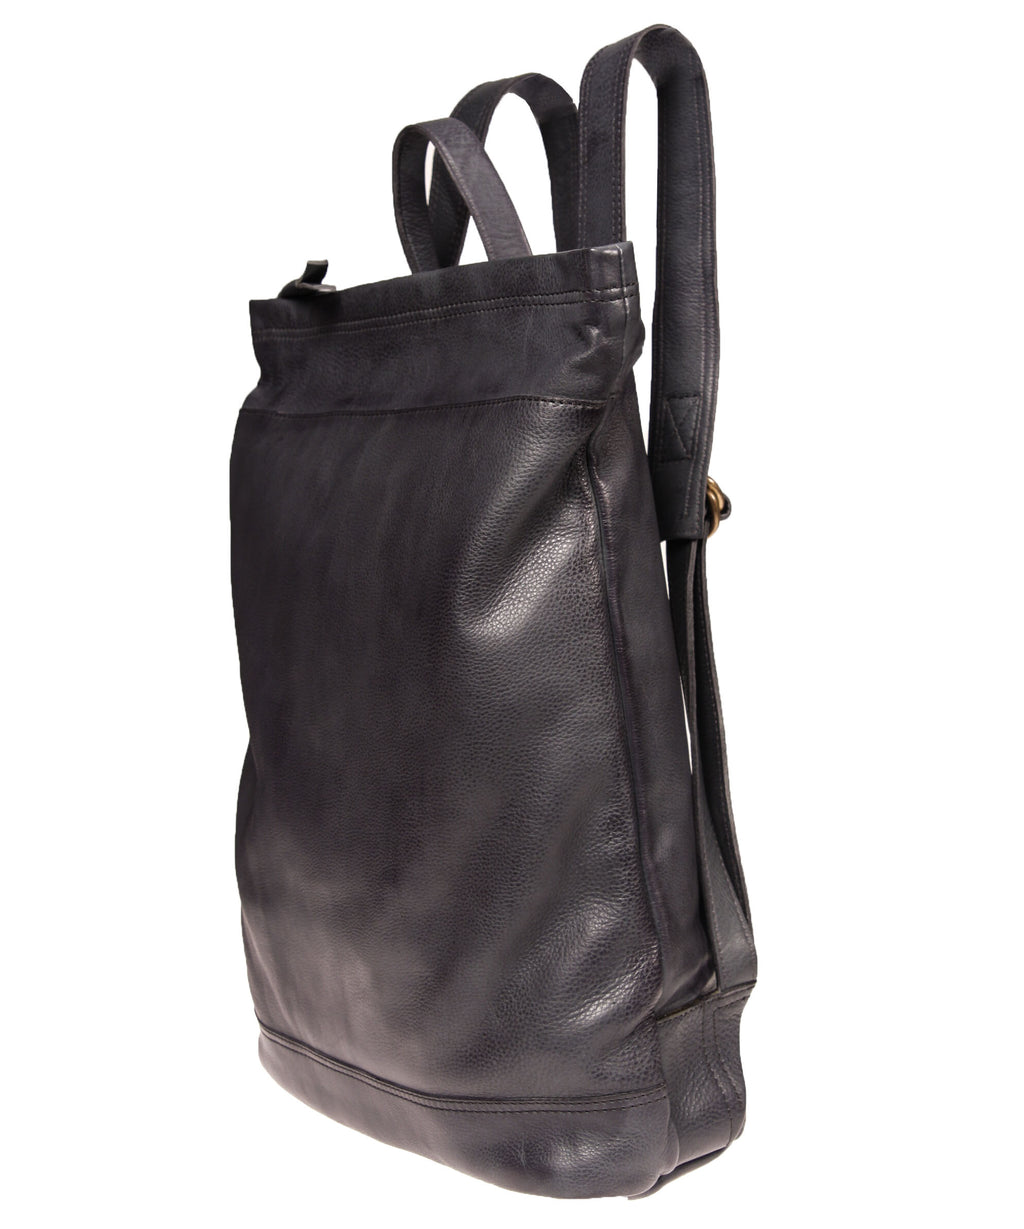 Tano Ultra Minimalist Backpack (4401367580756)